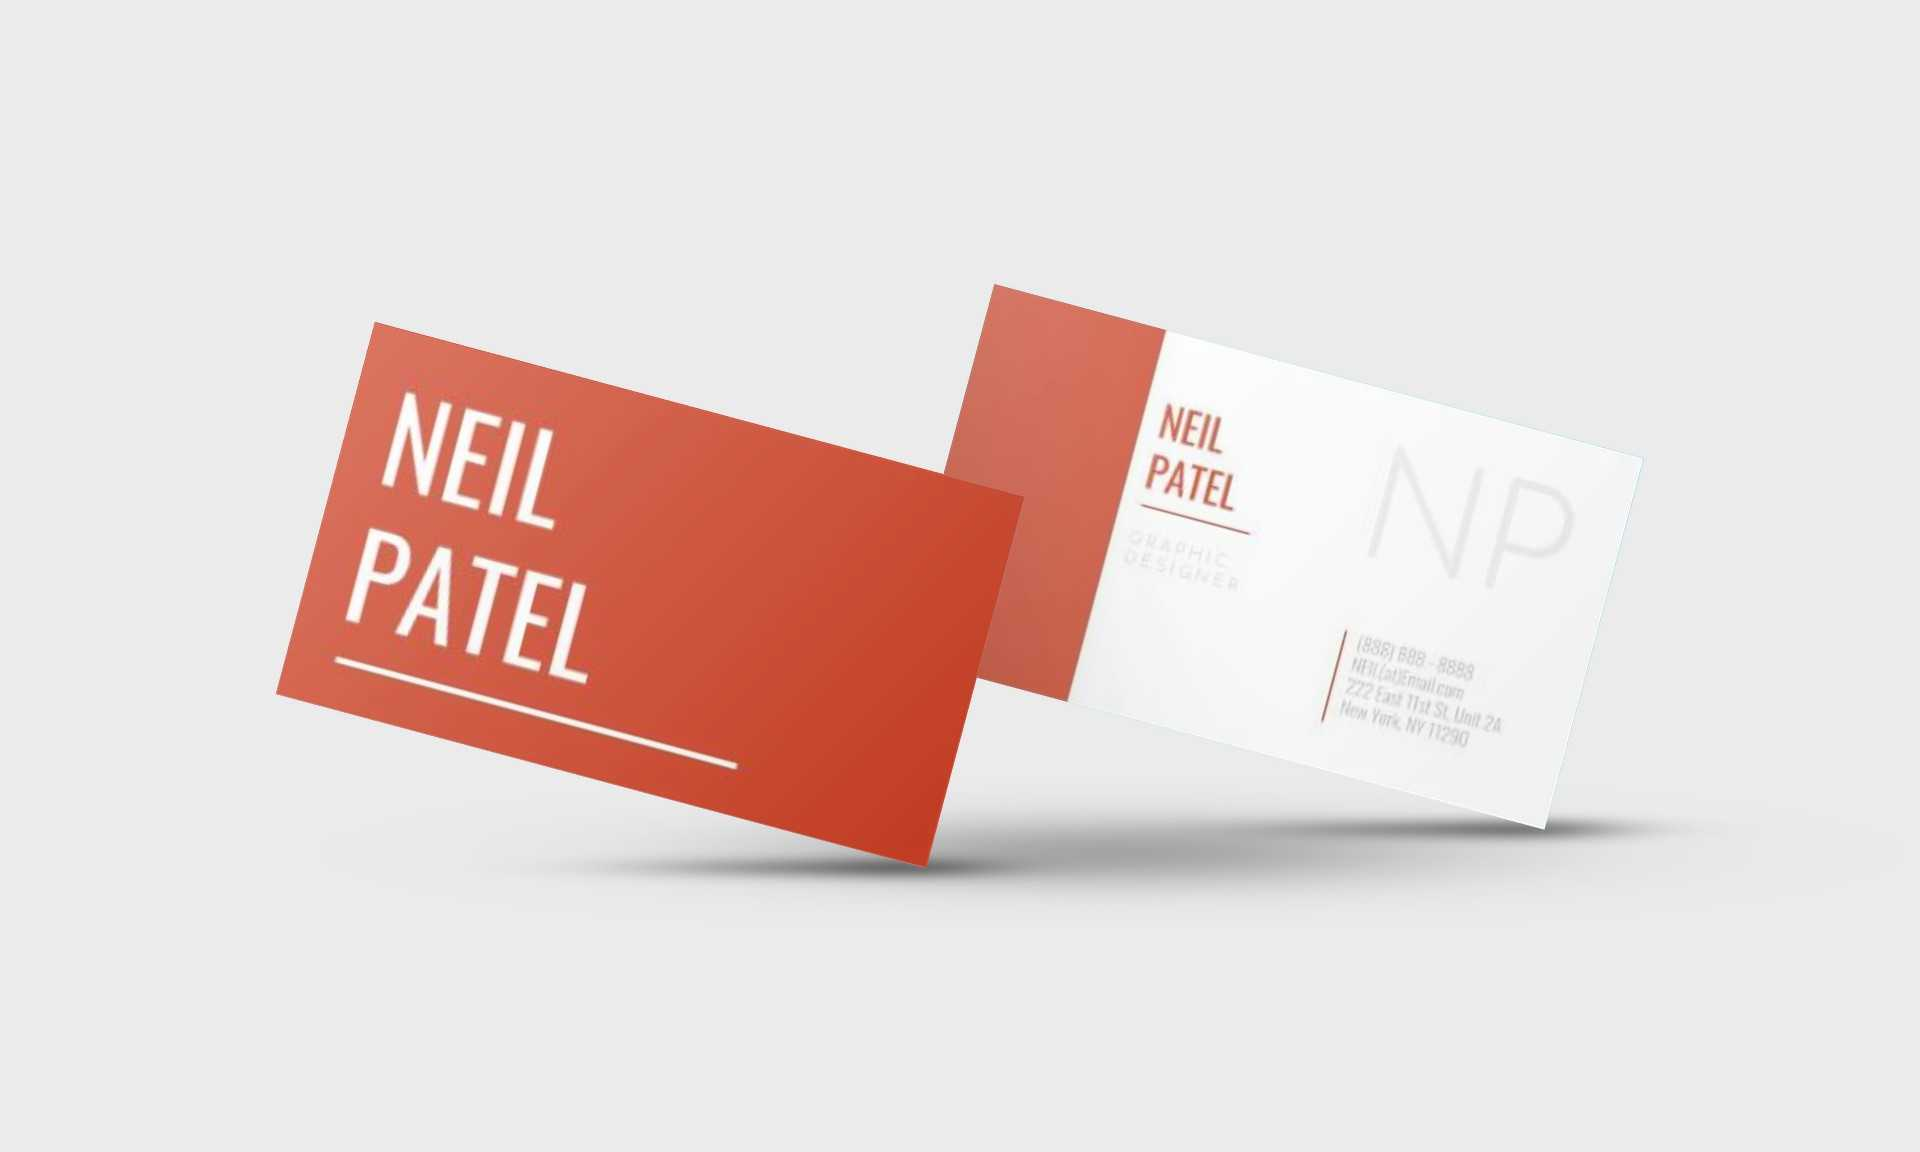 Neil Patel Google Docs Business Card Template - Stand Out Shop Throughout Google Docs Business Card Template